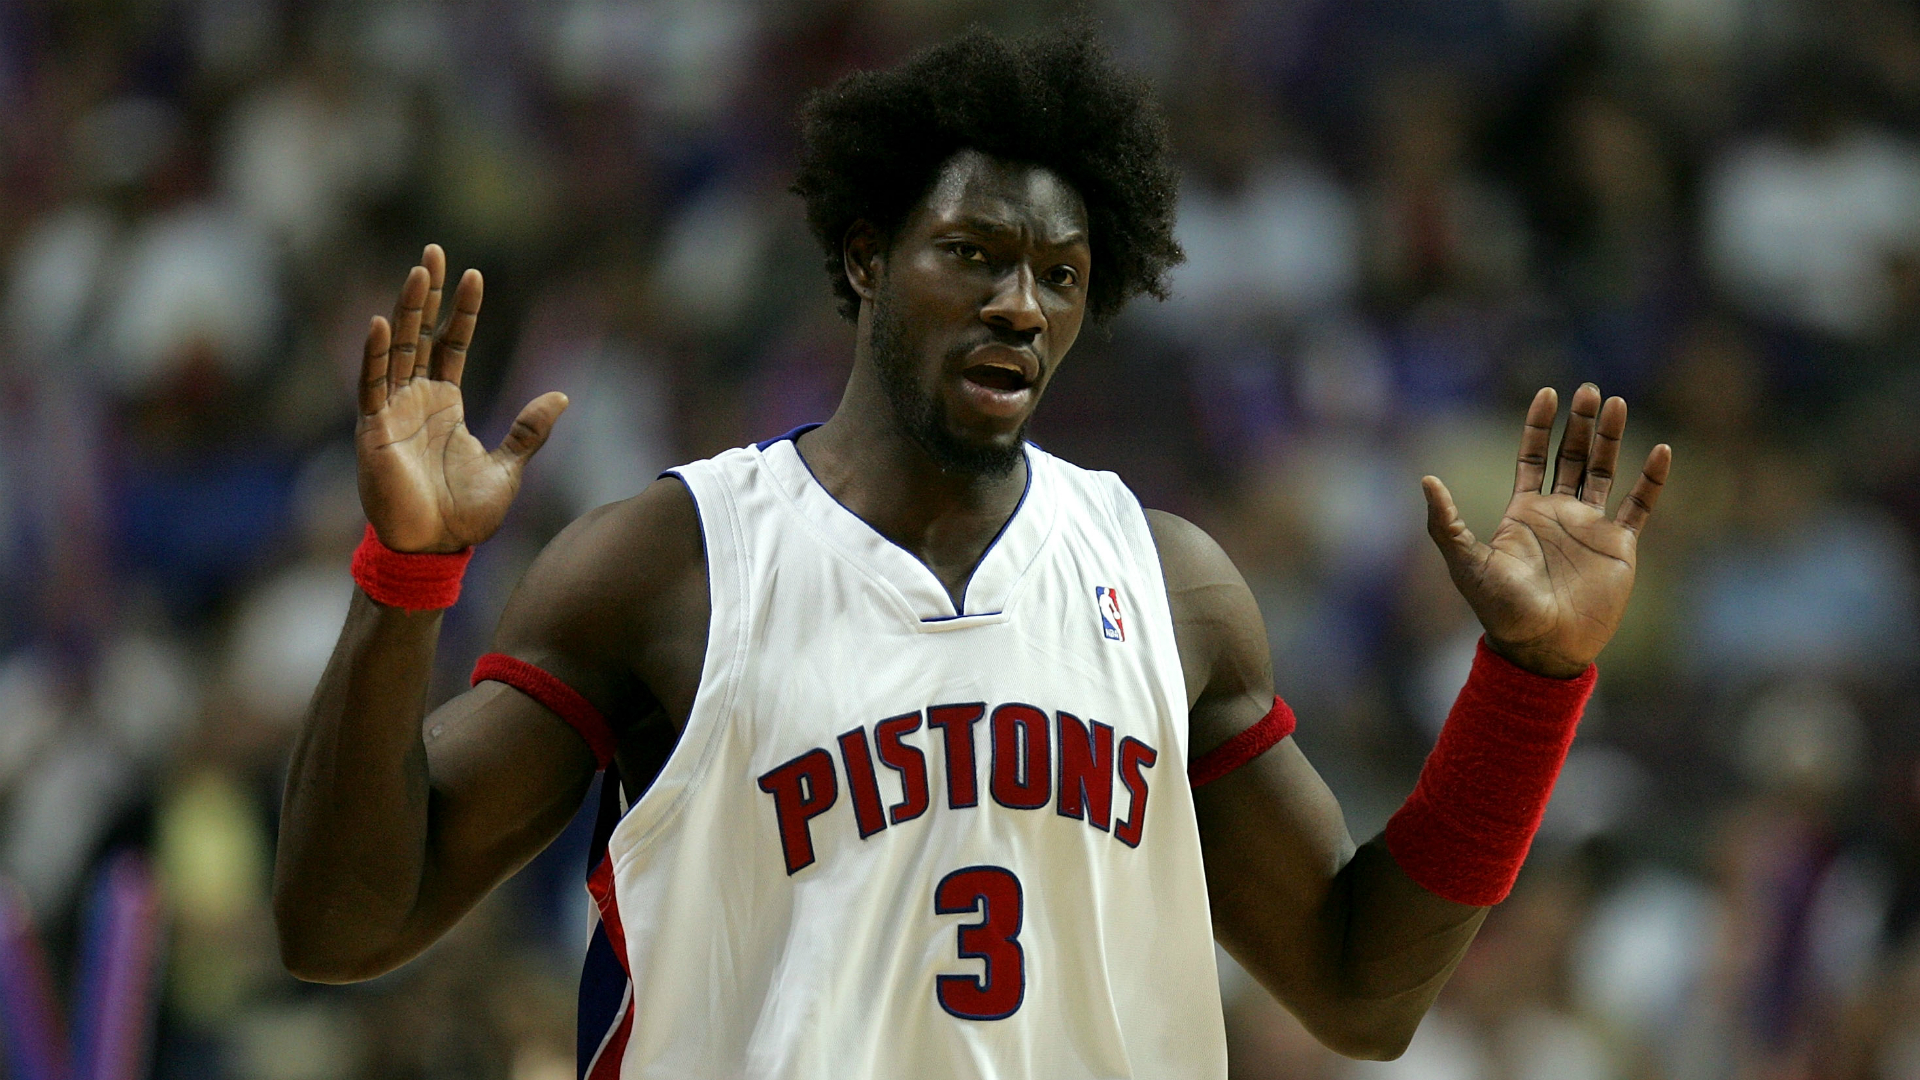 Ben Wallace will be Basketball Hall of Fame s next great big man